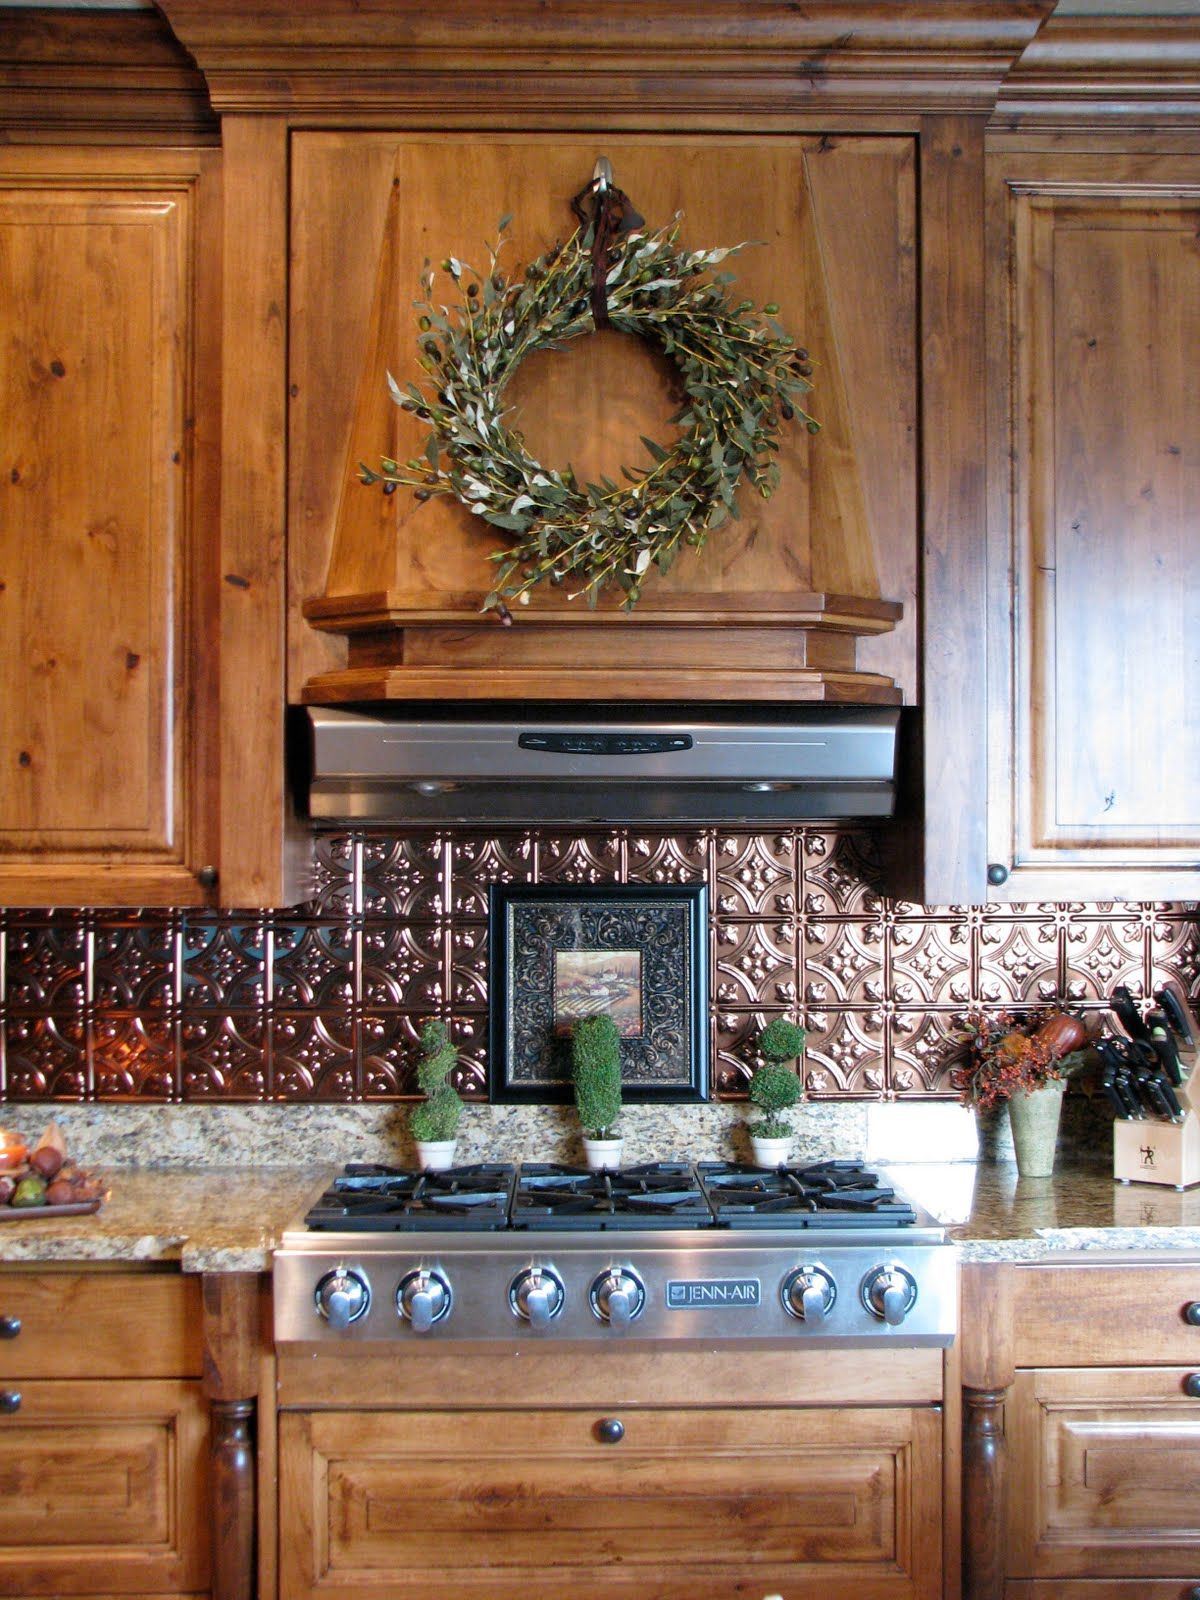 Diy Rustic Backsplash Affordable Diy Tin Backsplash Soooo Cute Dream Home